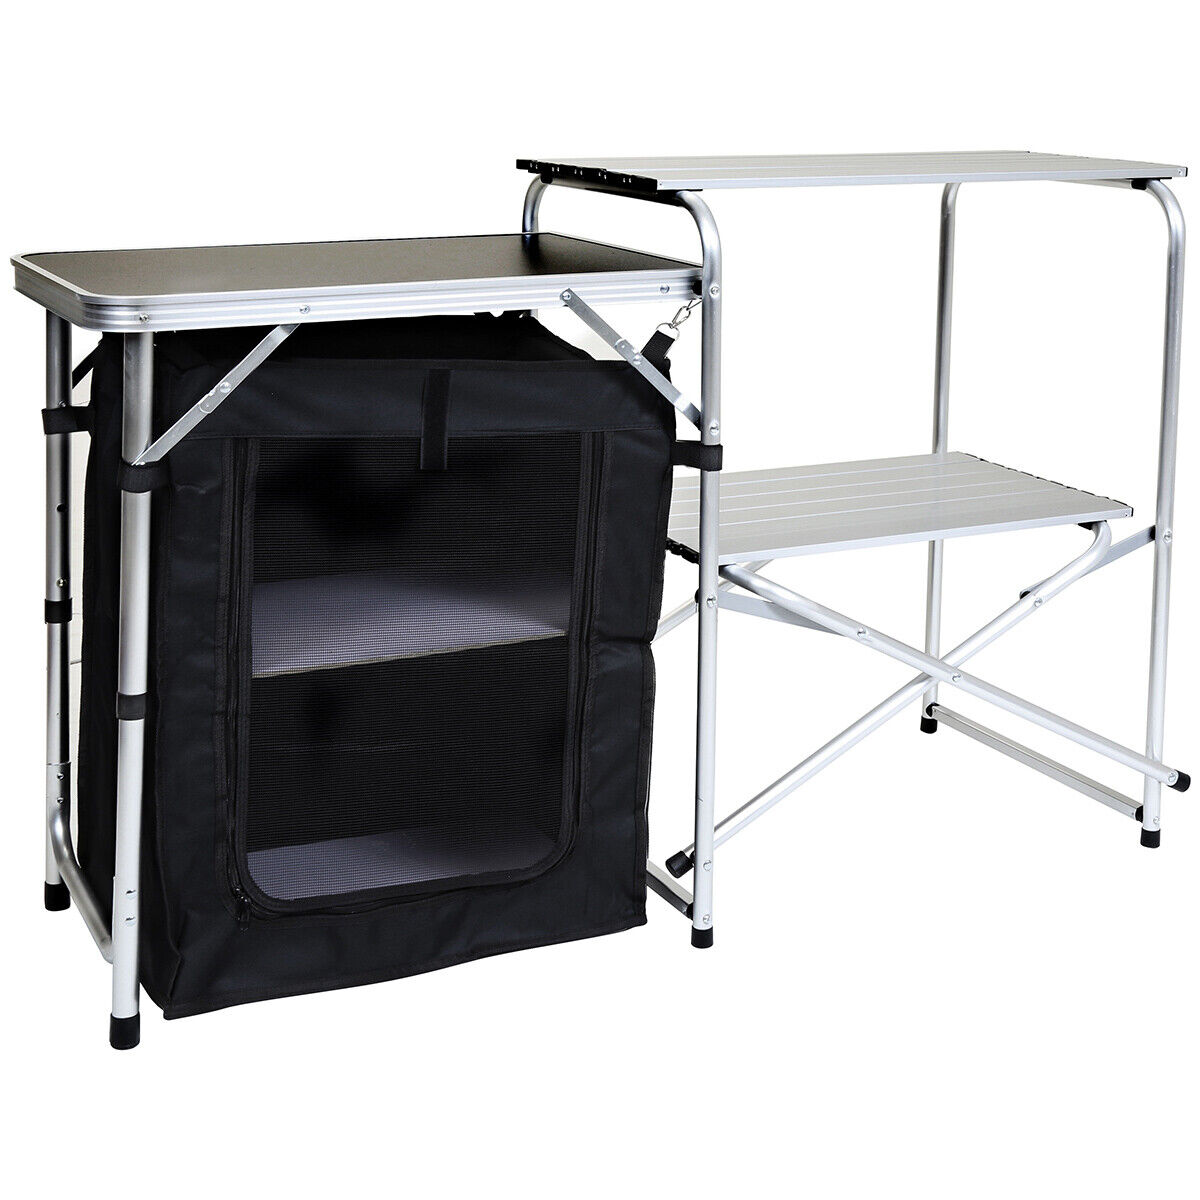 Charles Bentley Odyssey Folding Small Camping Kitchen Stand Storage Unit Cooking For Sale Online Ebay